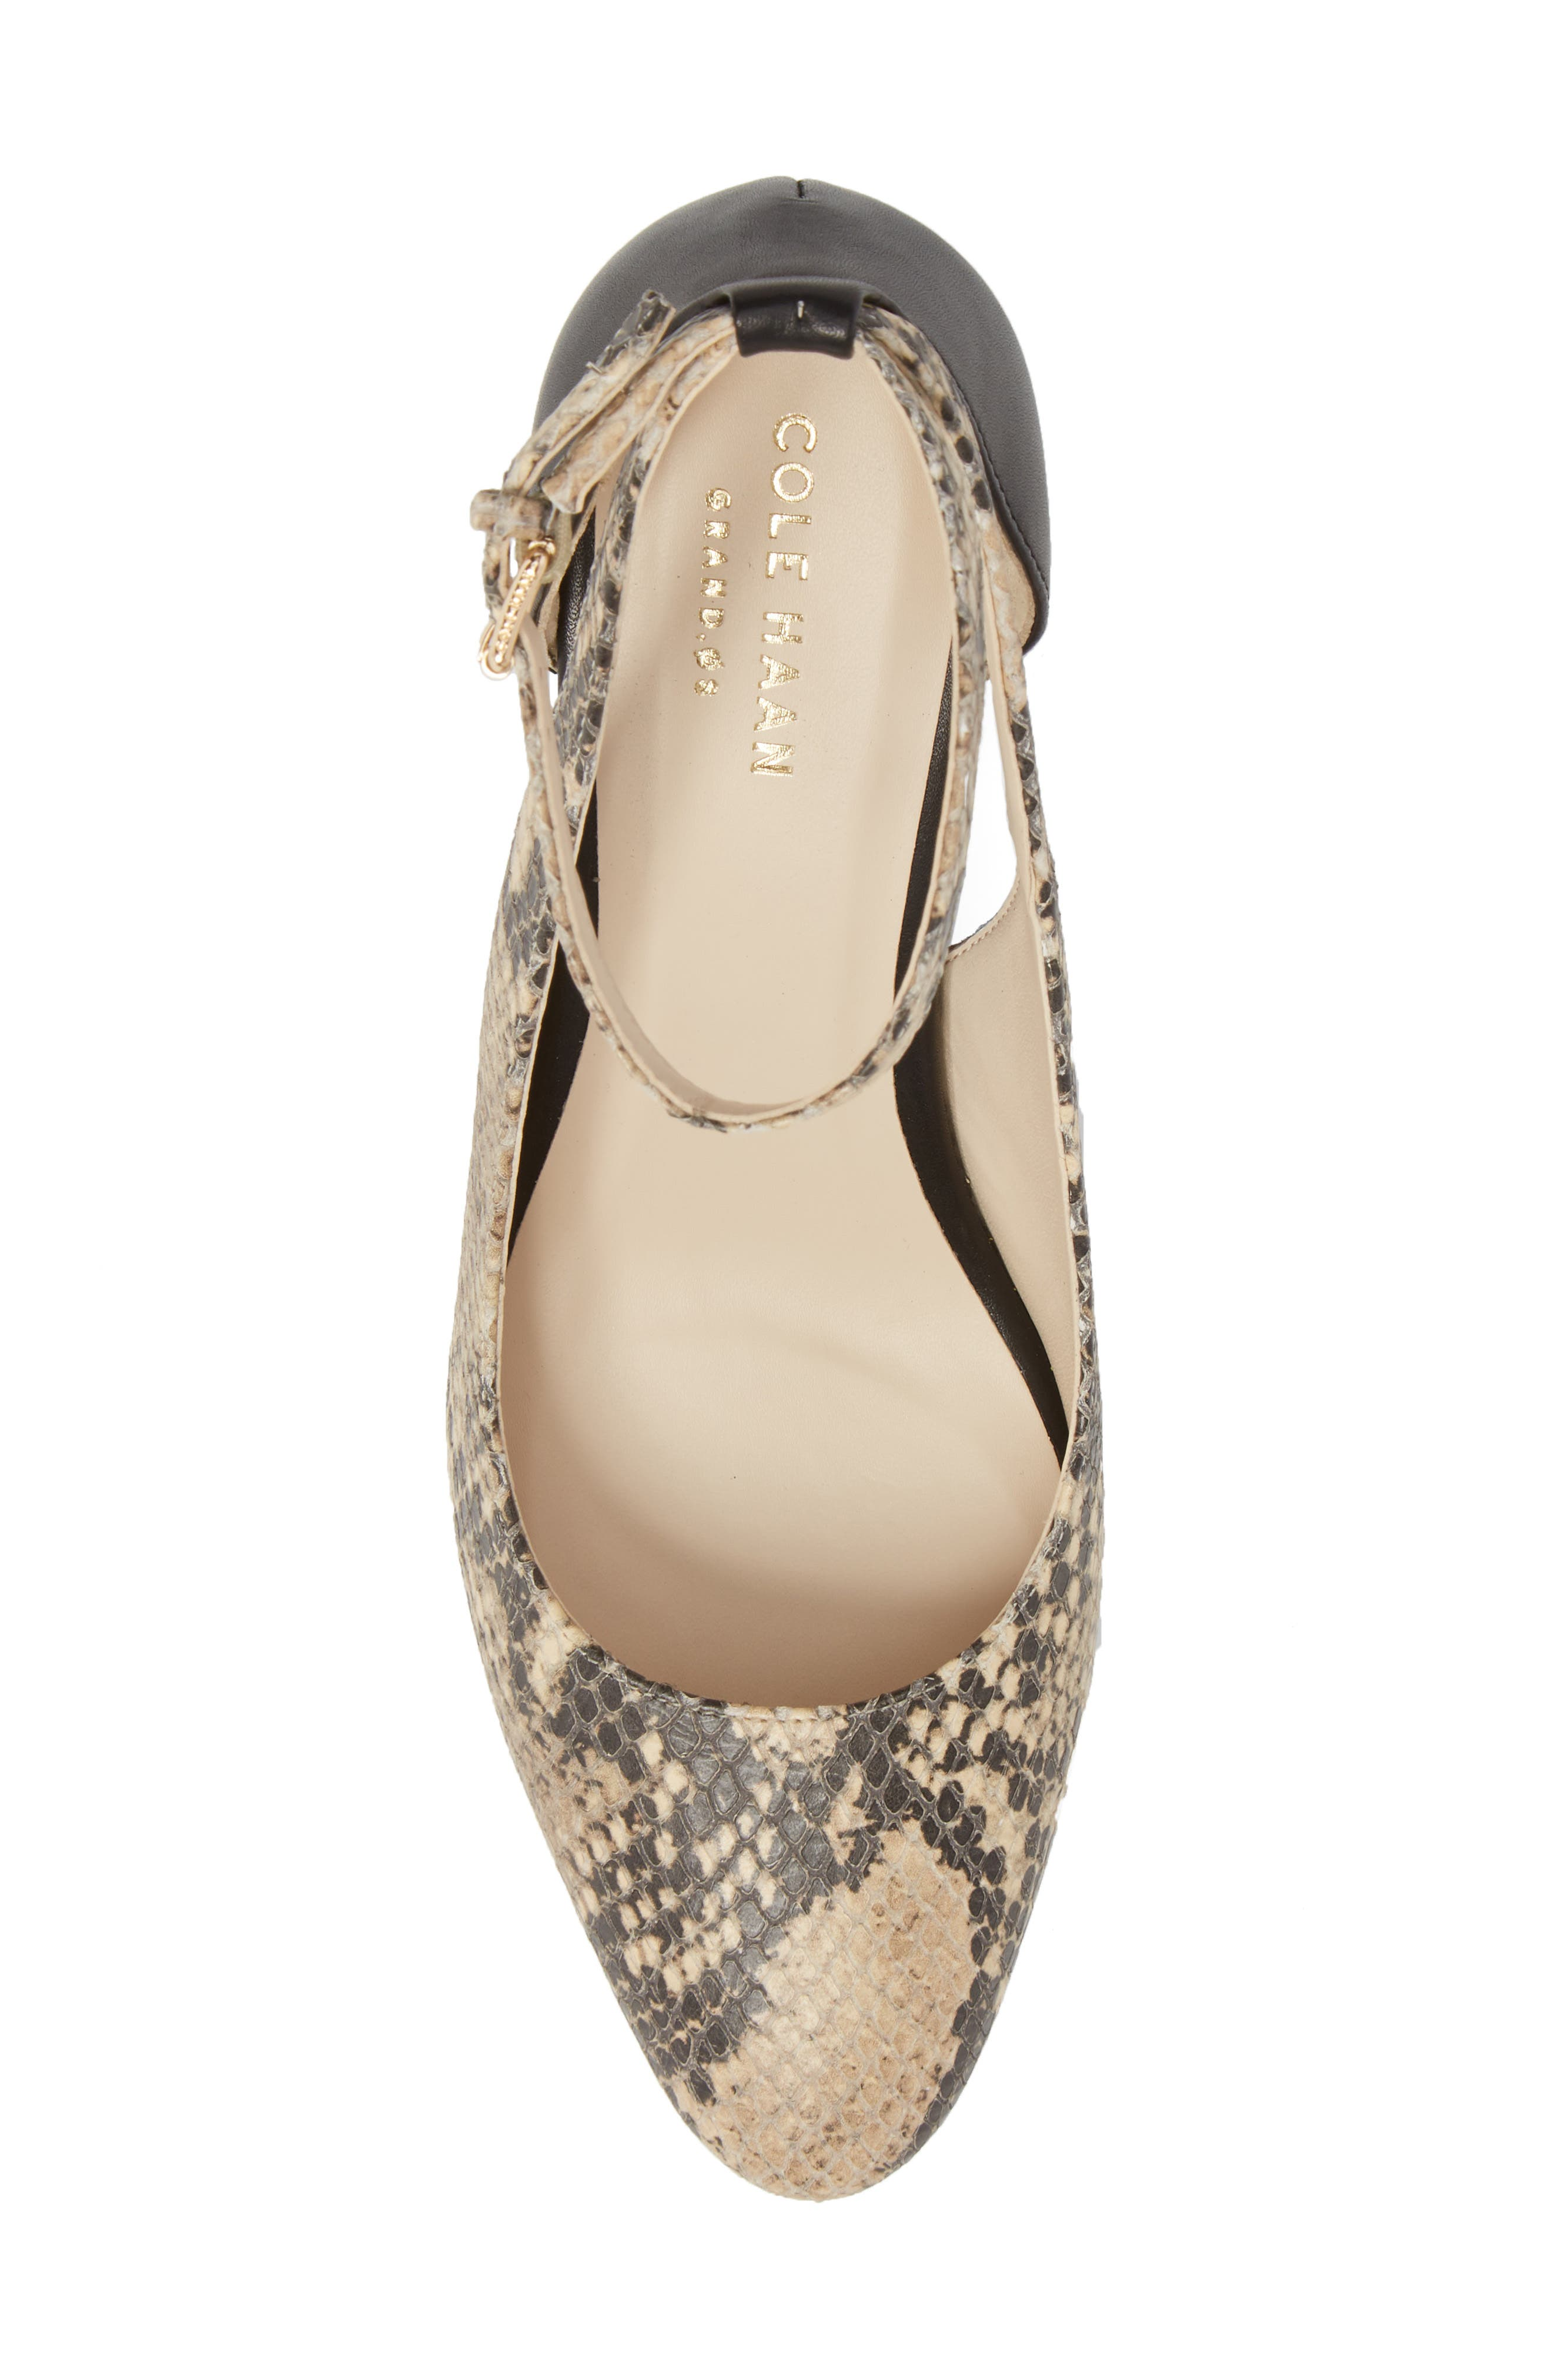 Lacey Cutout Wedge Pump,                             Alternate thumbnail 5, color,                             SNAKE PRINT LEATHER